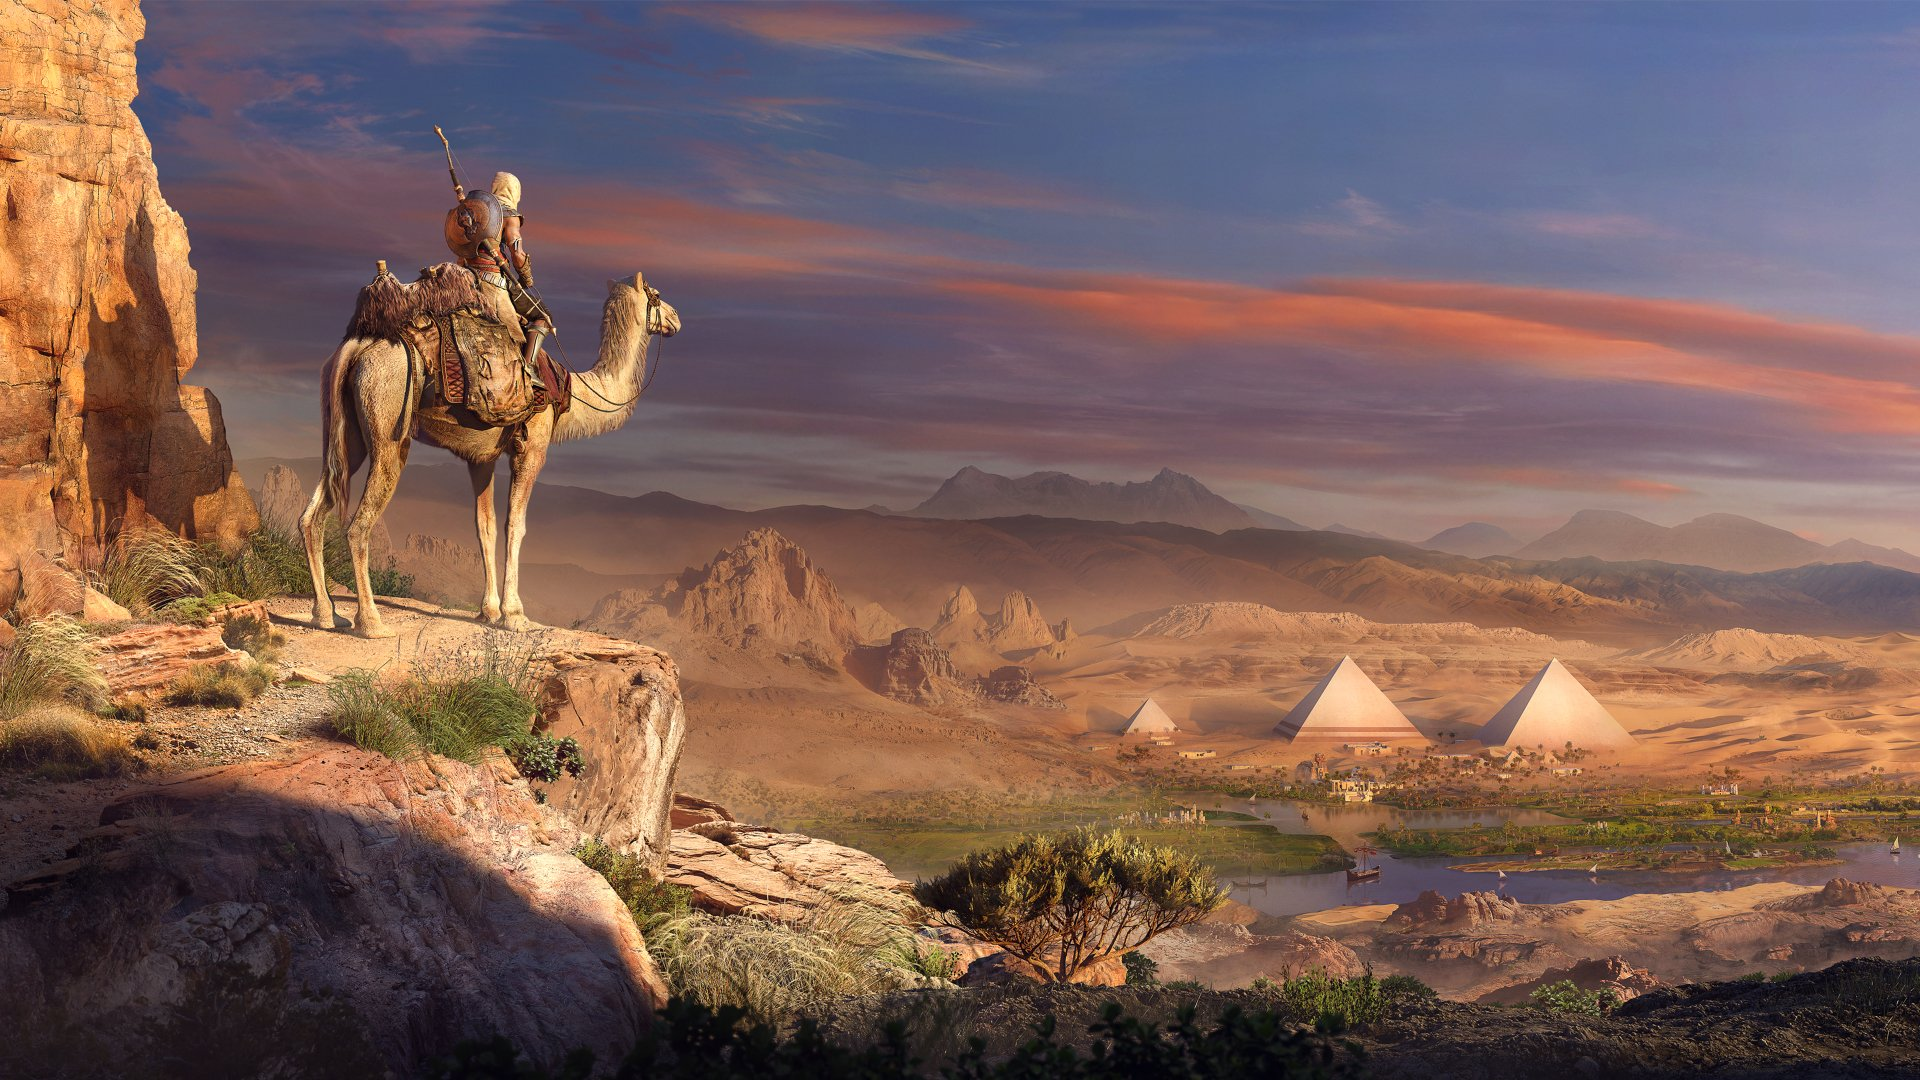 Assassin's Creed Origins Wallpaper HD 4k